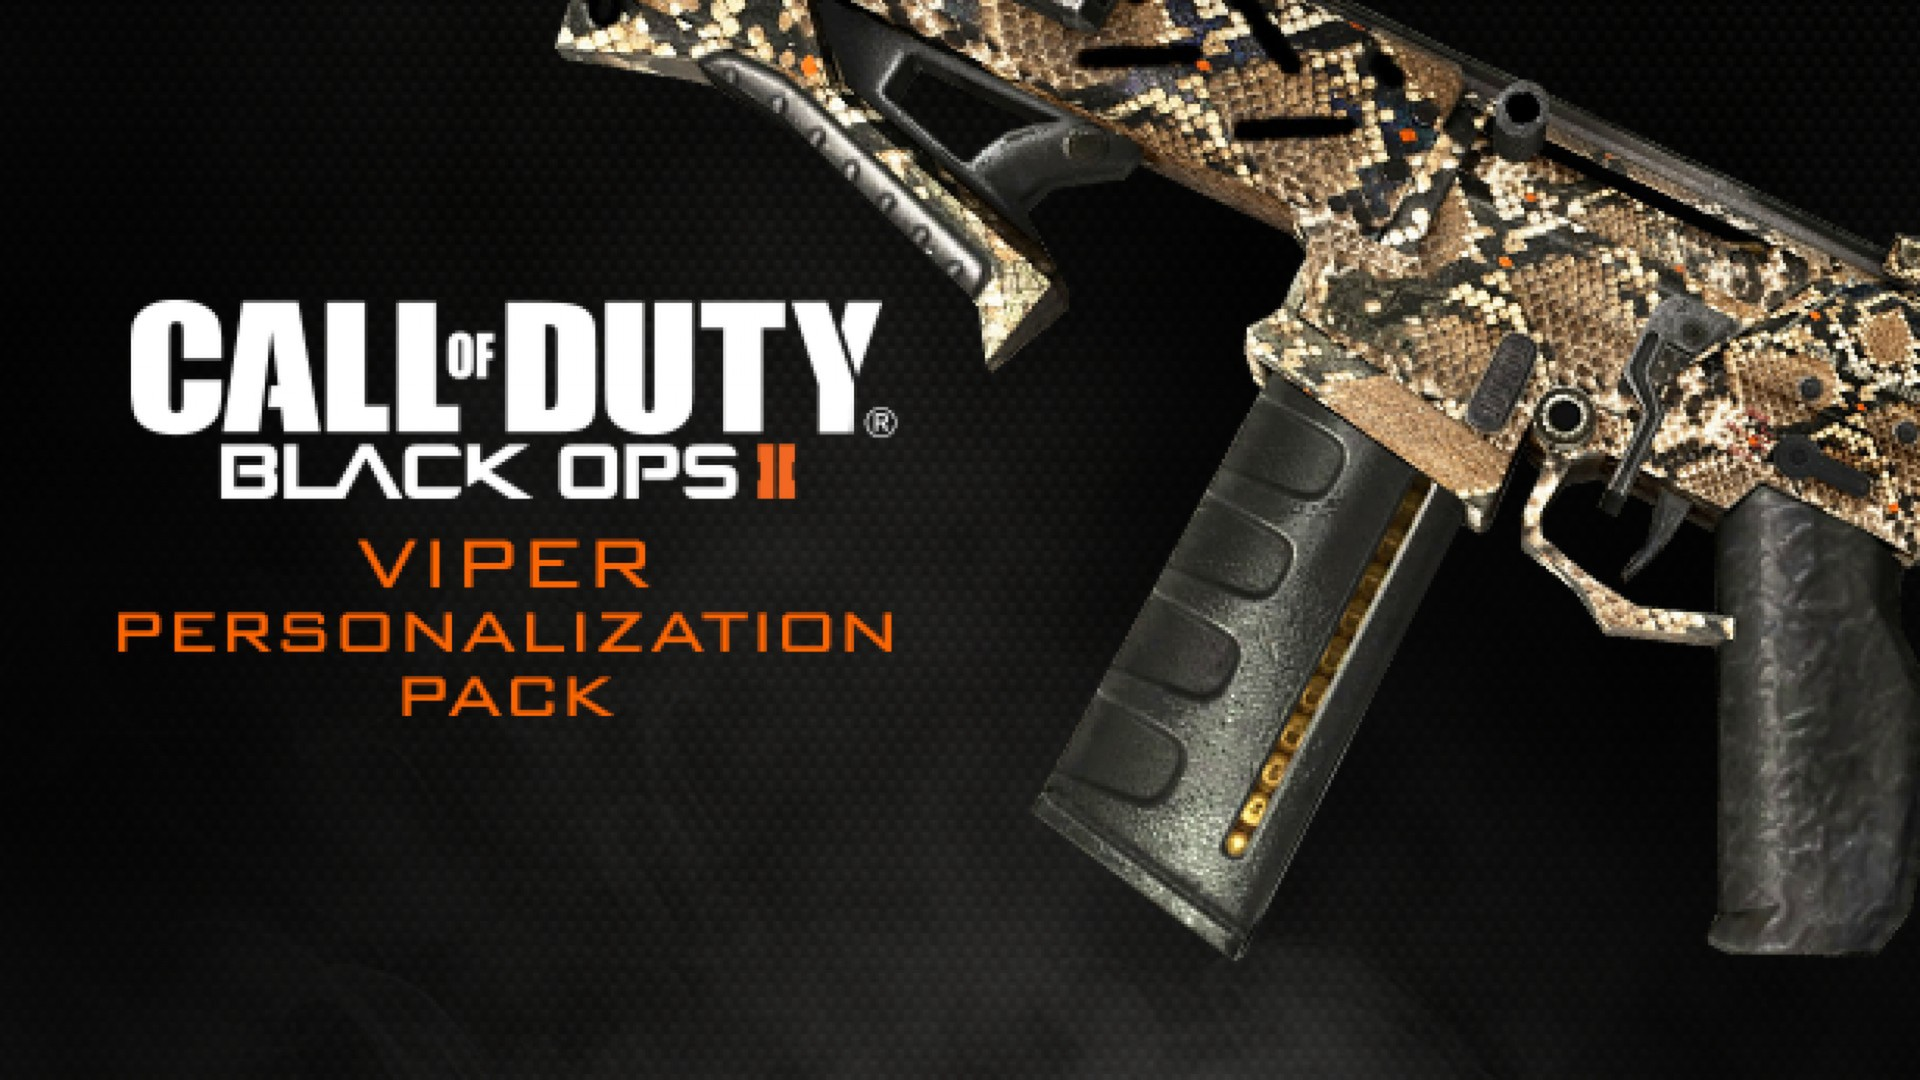 Call Of Duty Black Ops Ii Viper Personalization Pack On Steam